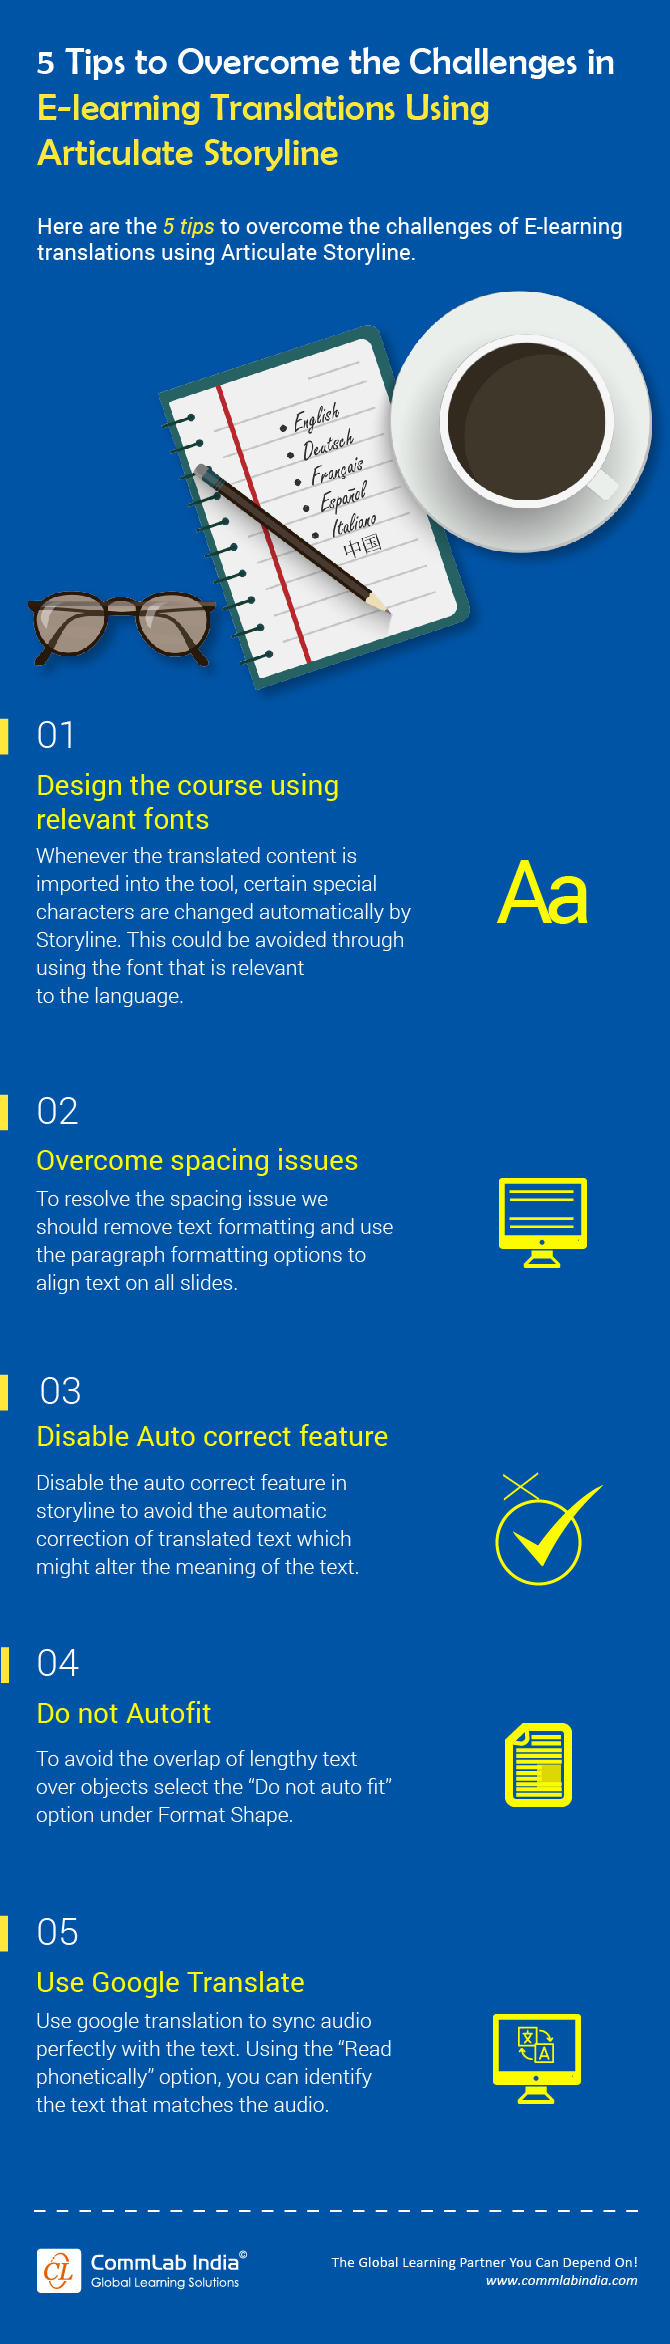 5 Tips to Overcome E-learning Translation Challenges using Articulate Storyline [Infographic]